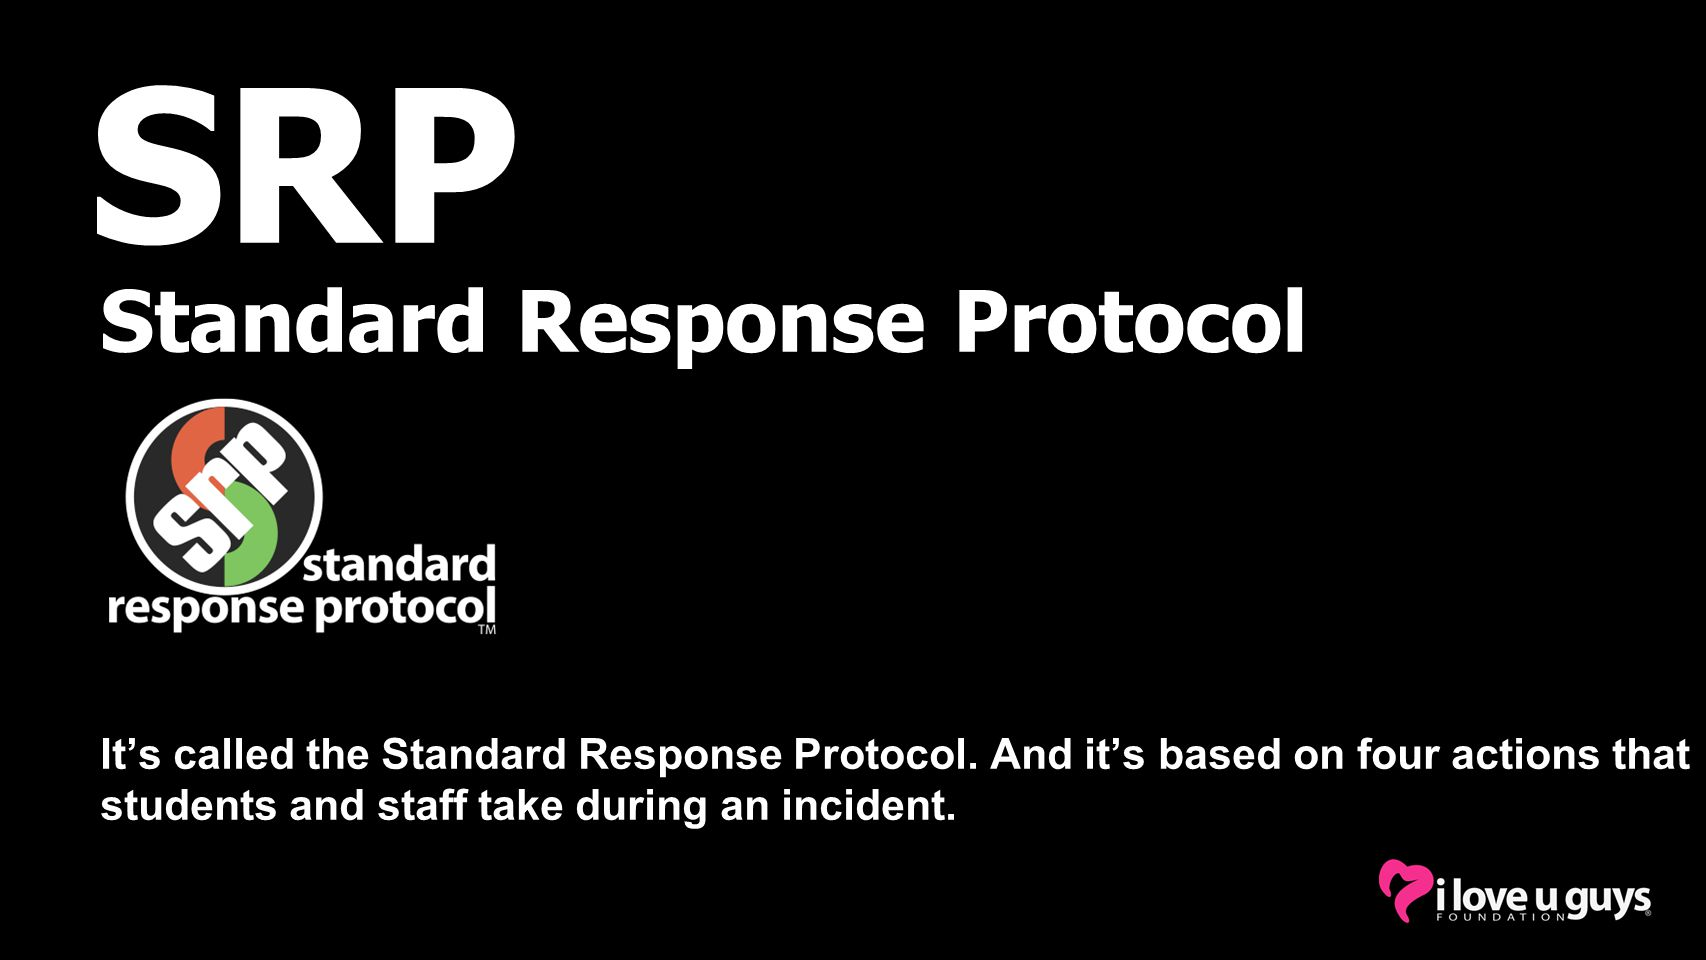 Standard Response Protocol It's called the Standard Response Protocol.